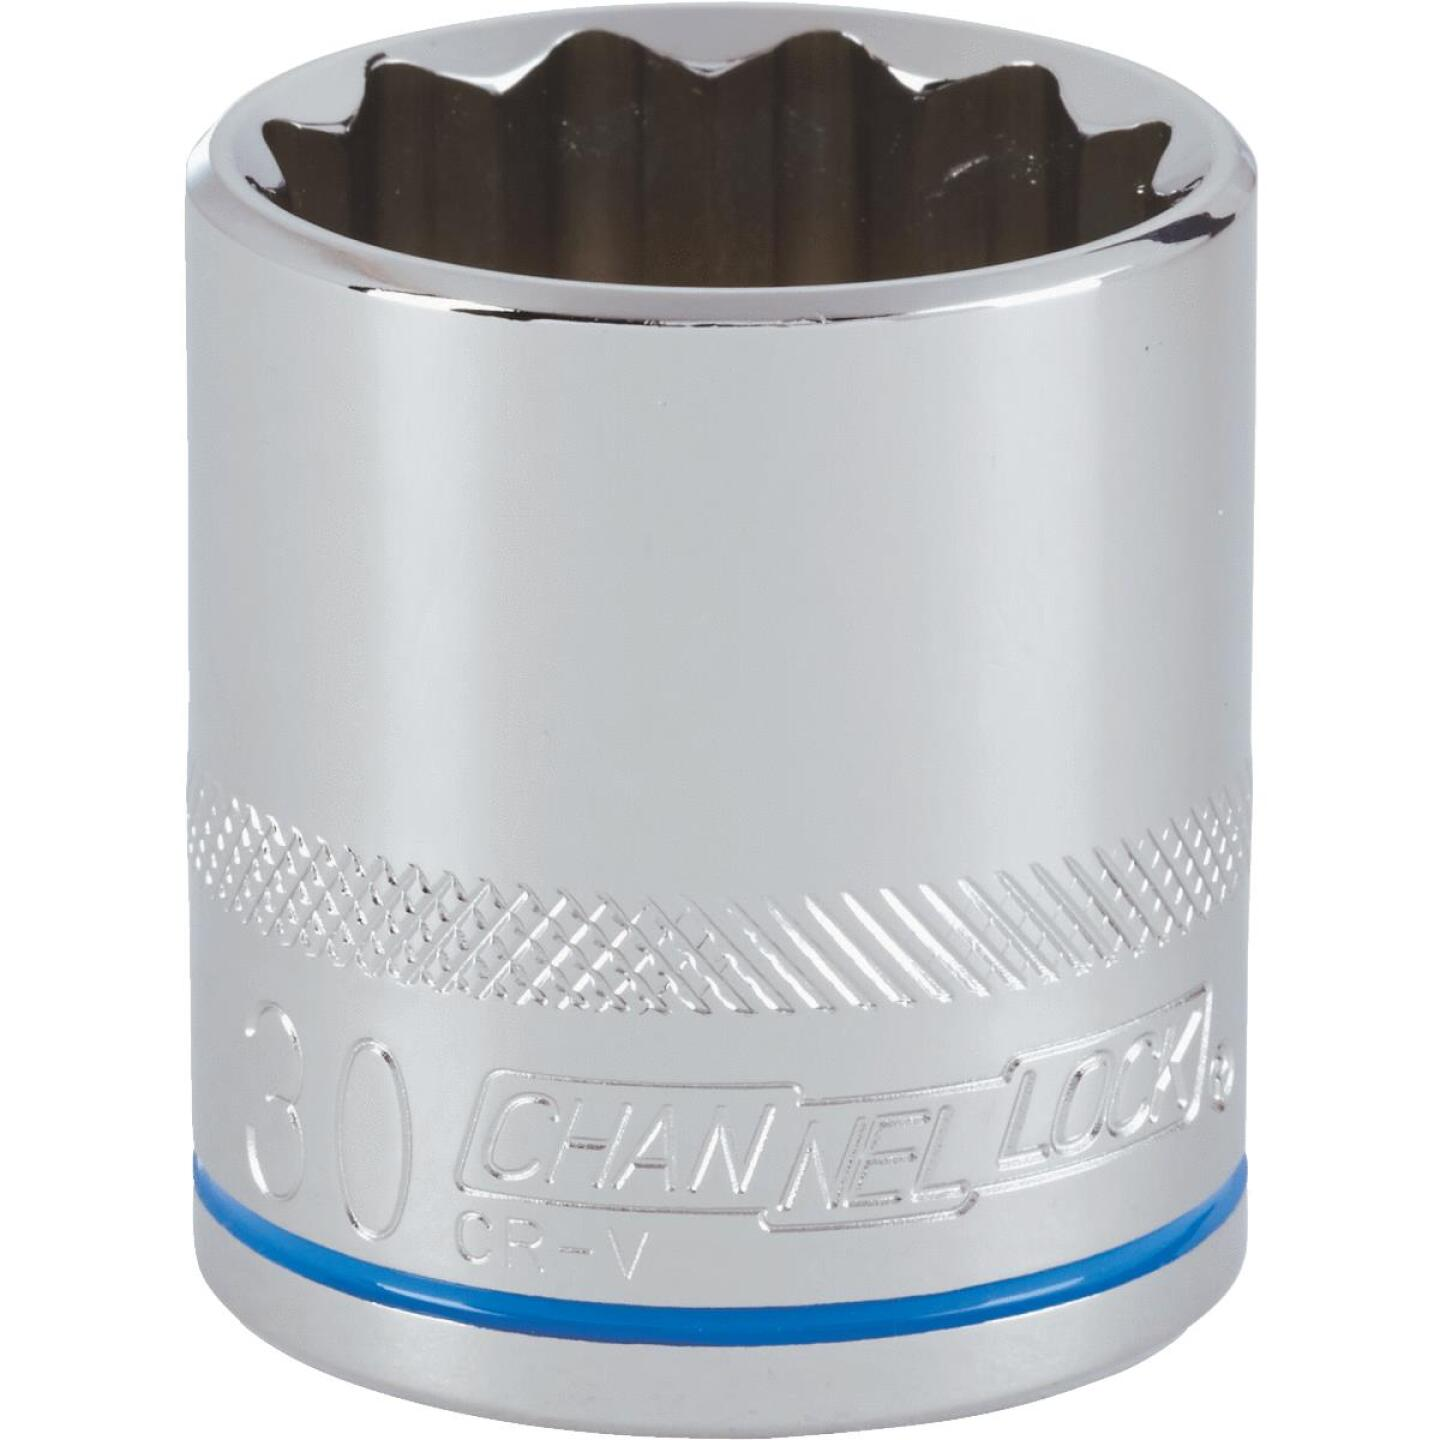 Channellock 1/2 In. Drive 30 mm 12-Point Shallow Metric Socket Image 1